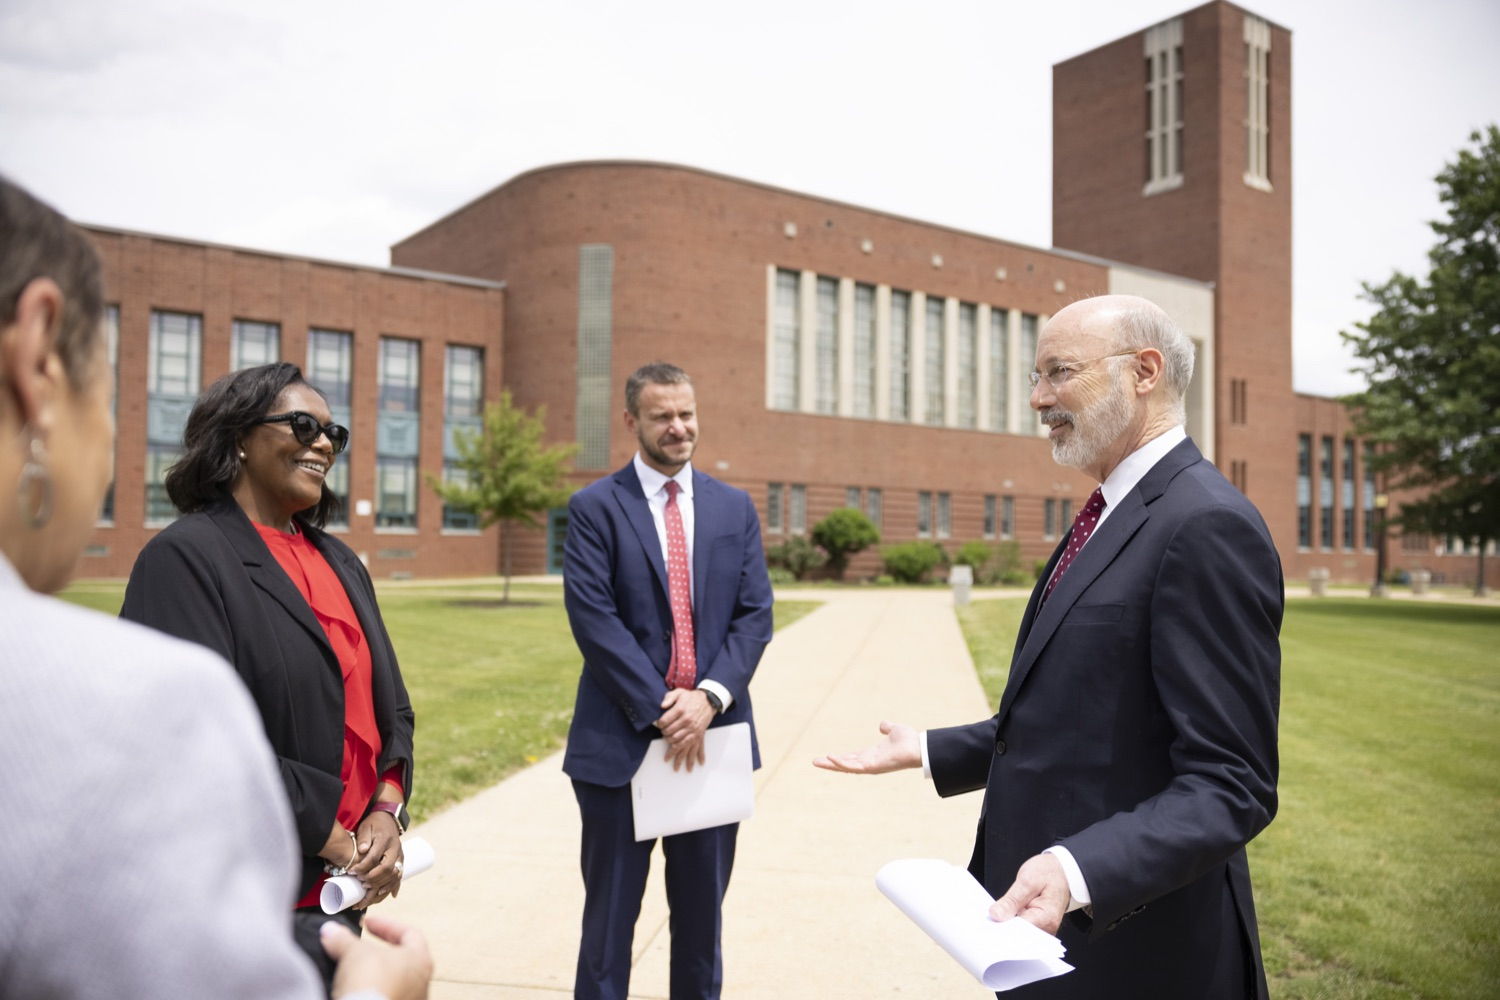 """<a href=""""https://filesource.wostreaming.net/commonwealthofpa/photo/18796_gov_charterSchool_dz_009.jpg"""" target=""""_blank"""">⇣Download Photo<br></a>Pennsylvania Governor Tom Wolf speaking with school administrators.  With overwhelming support among school districts for his charter school accountability plan, Governor Tom Wolf visited J.P. McCaskey High School in Lancaster today to discuss his bipartisan proposal that saves an estimated $395 million a year. Lancaster, PA  June 01, 2021"""